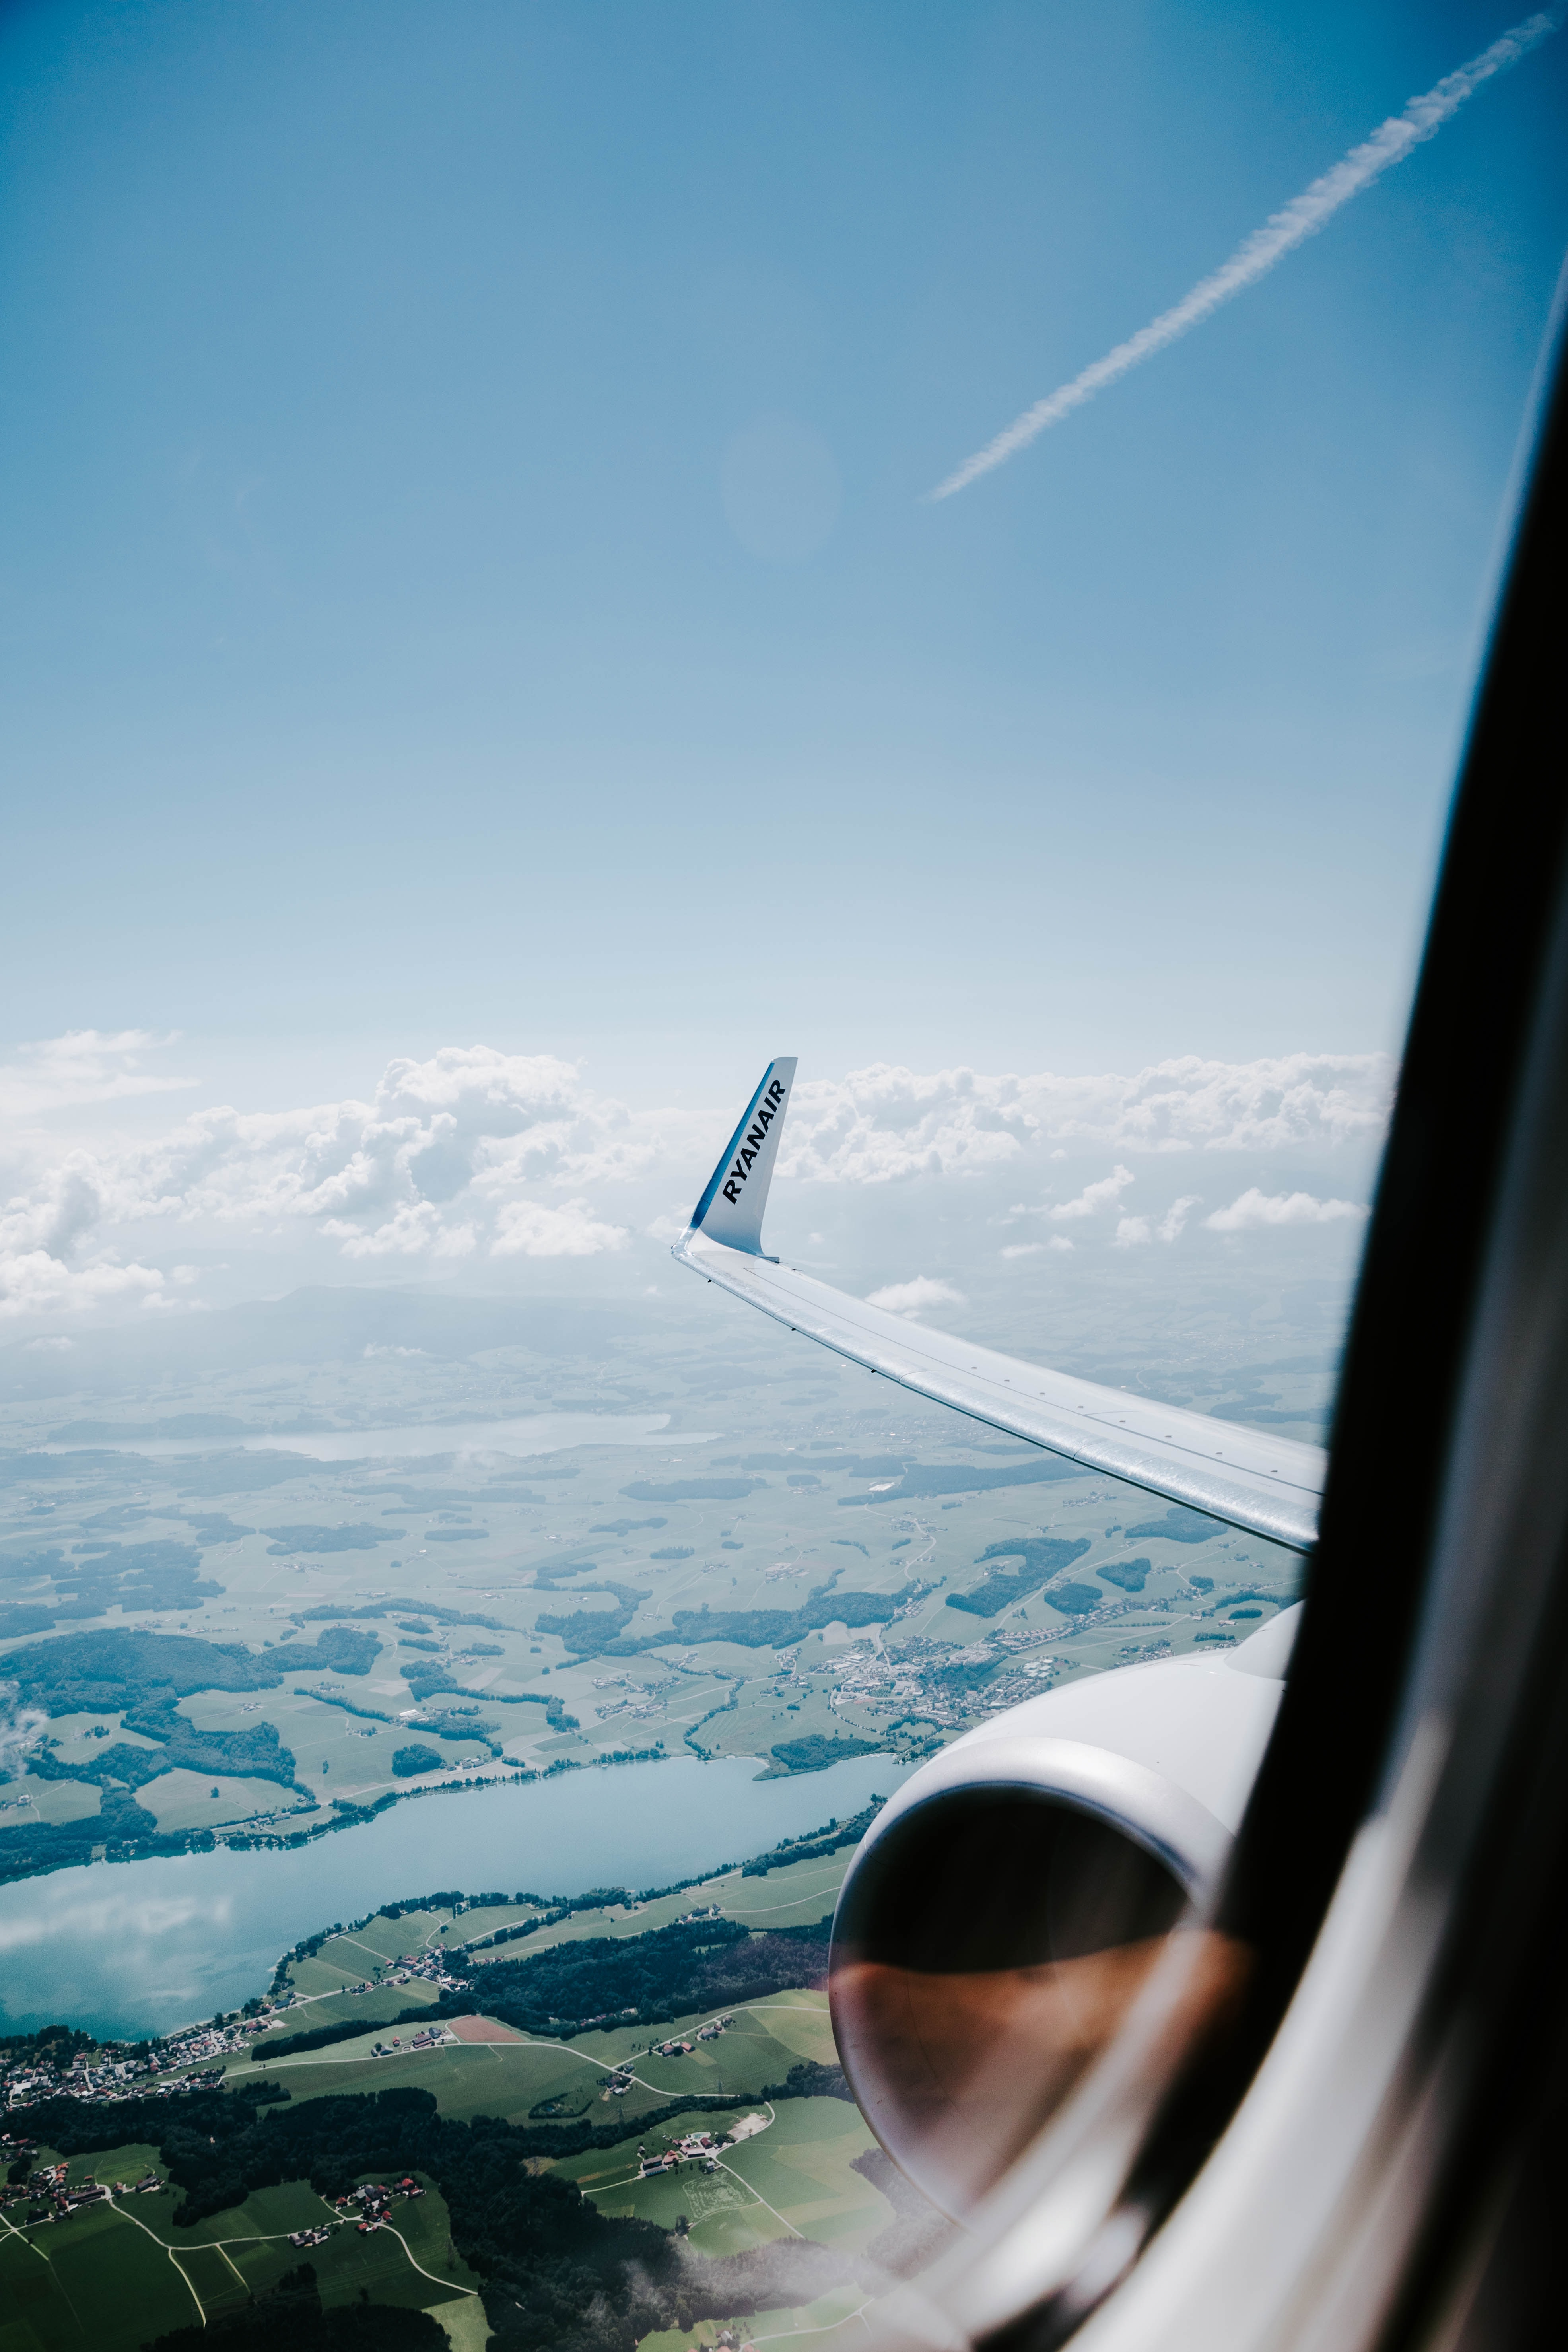 window view of airplane